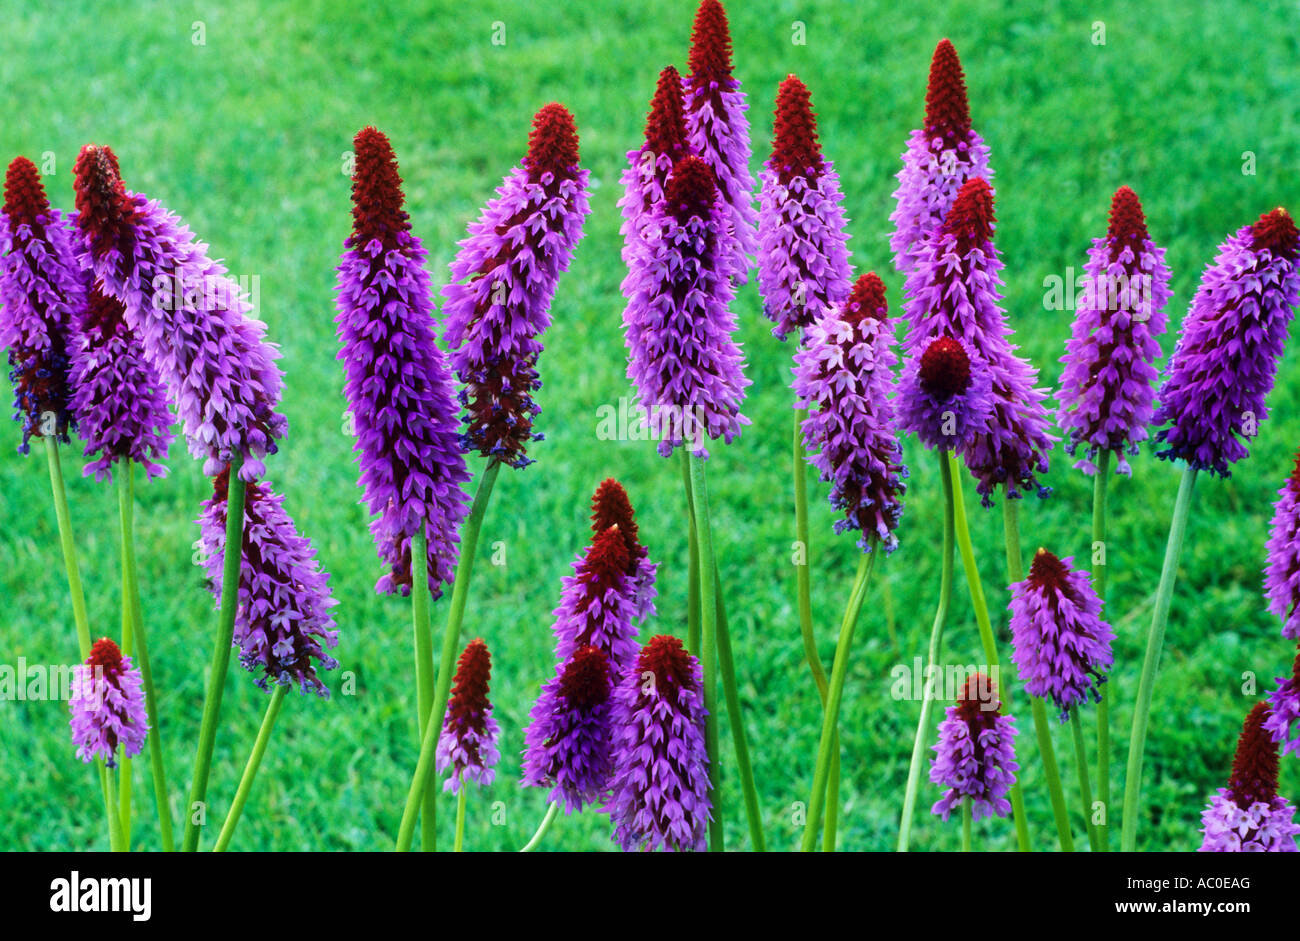 Purple Backyard Flowers : primulavialiipurpleandredflowersgardenplantplantsflower